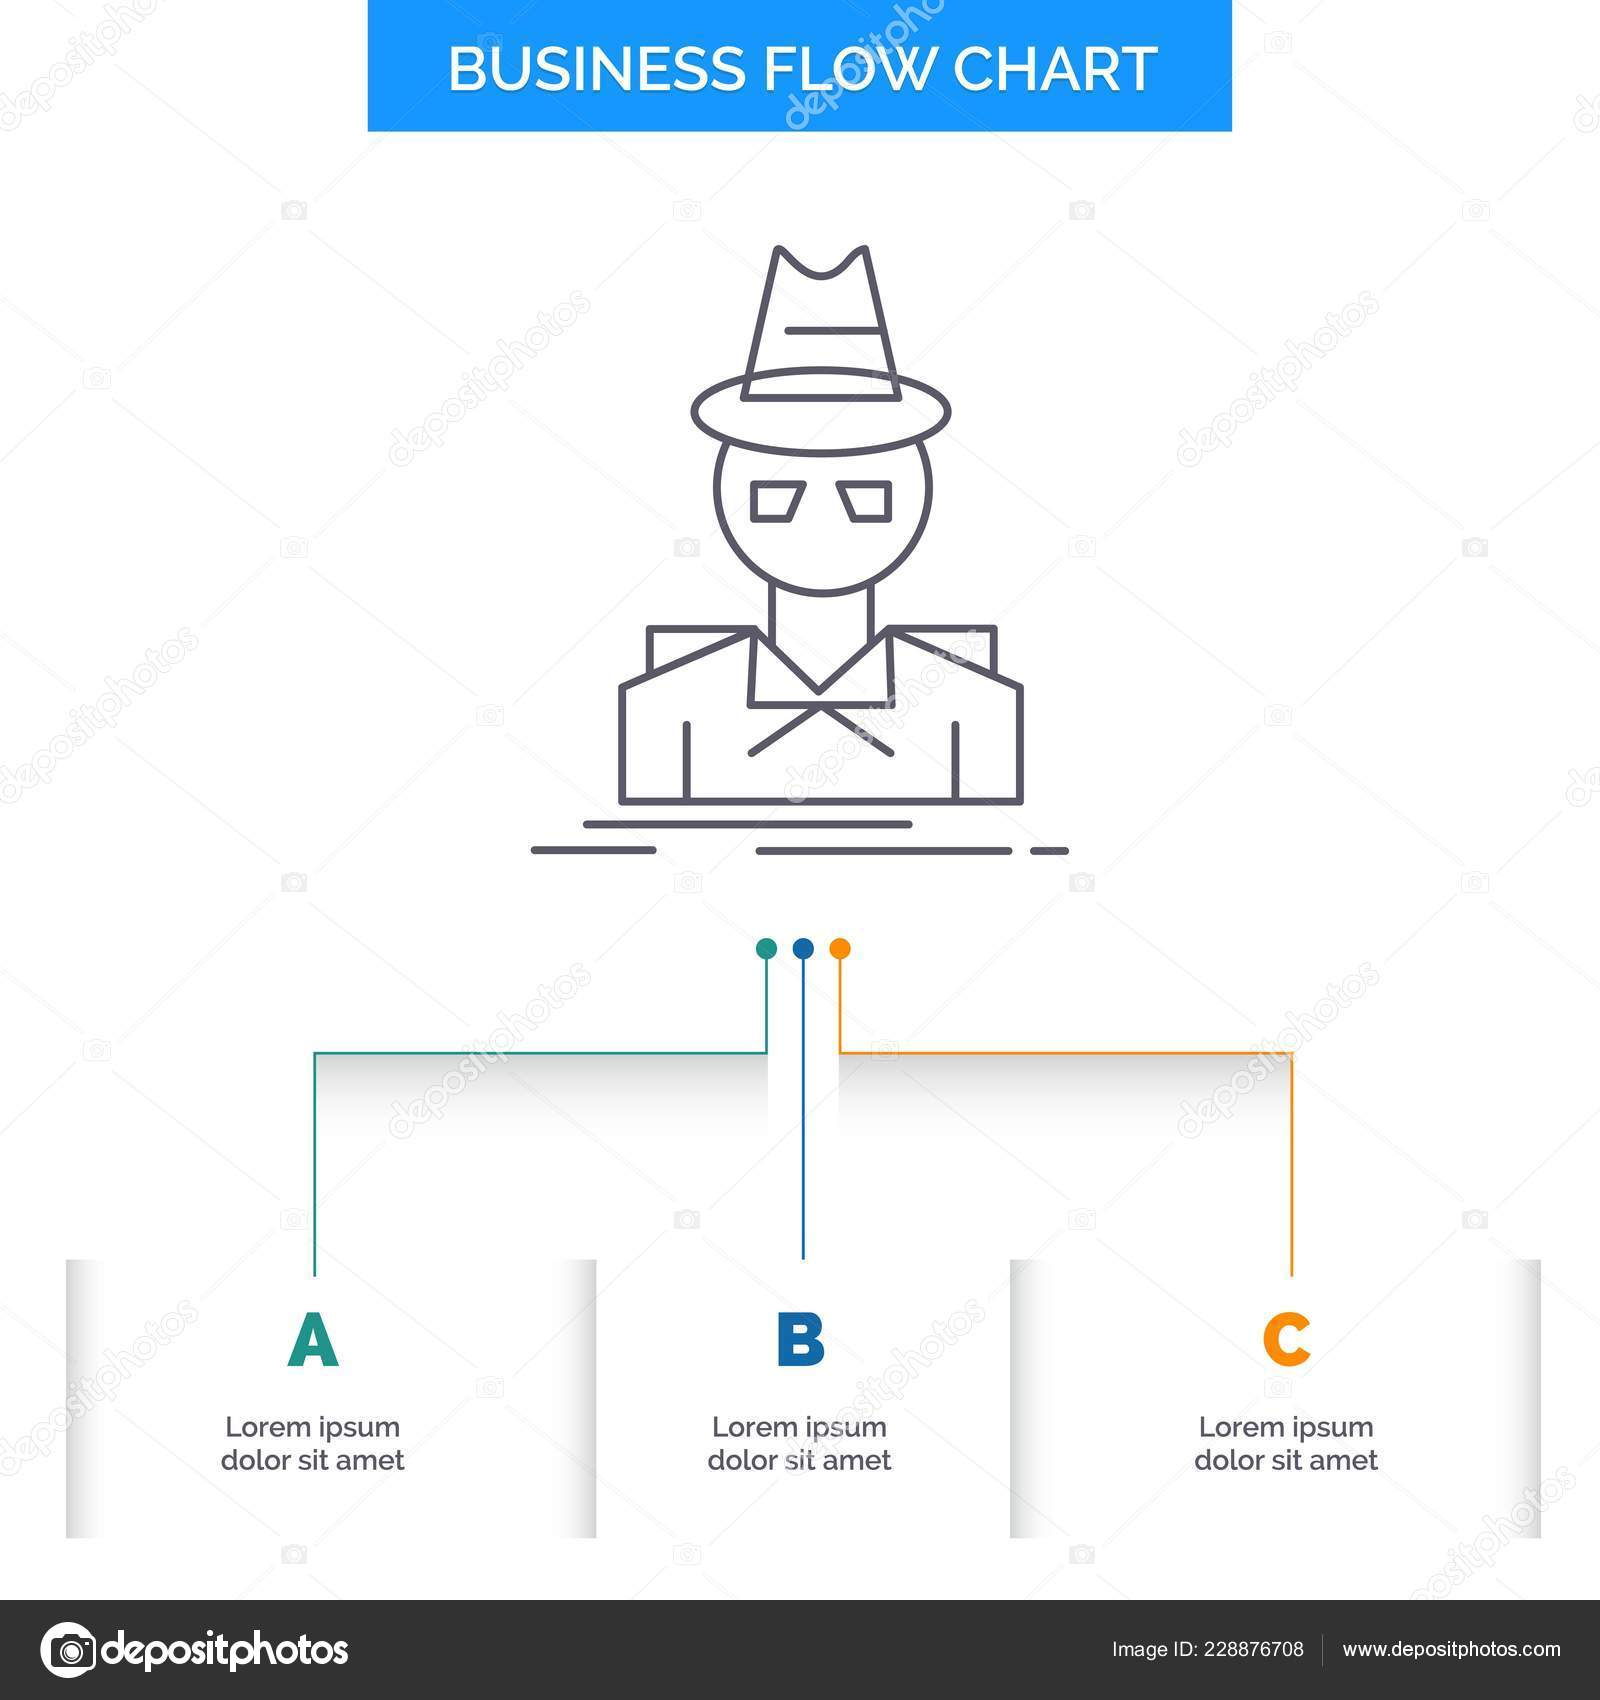 625f5de7 Detective, hacker, incognito, spy, thief Business Flow Chart Design with 3  Steps. Line Icon For Presentation Background Template Place for text —  Vector by ...